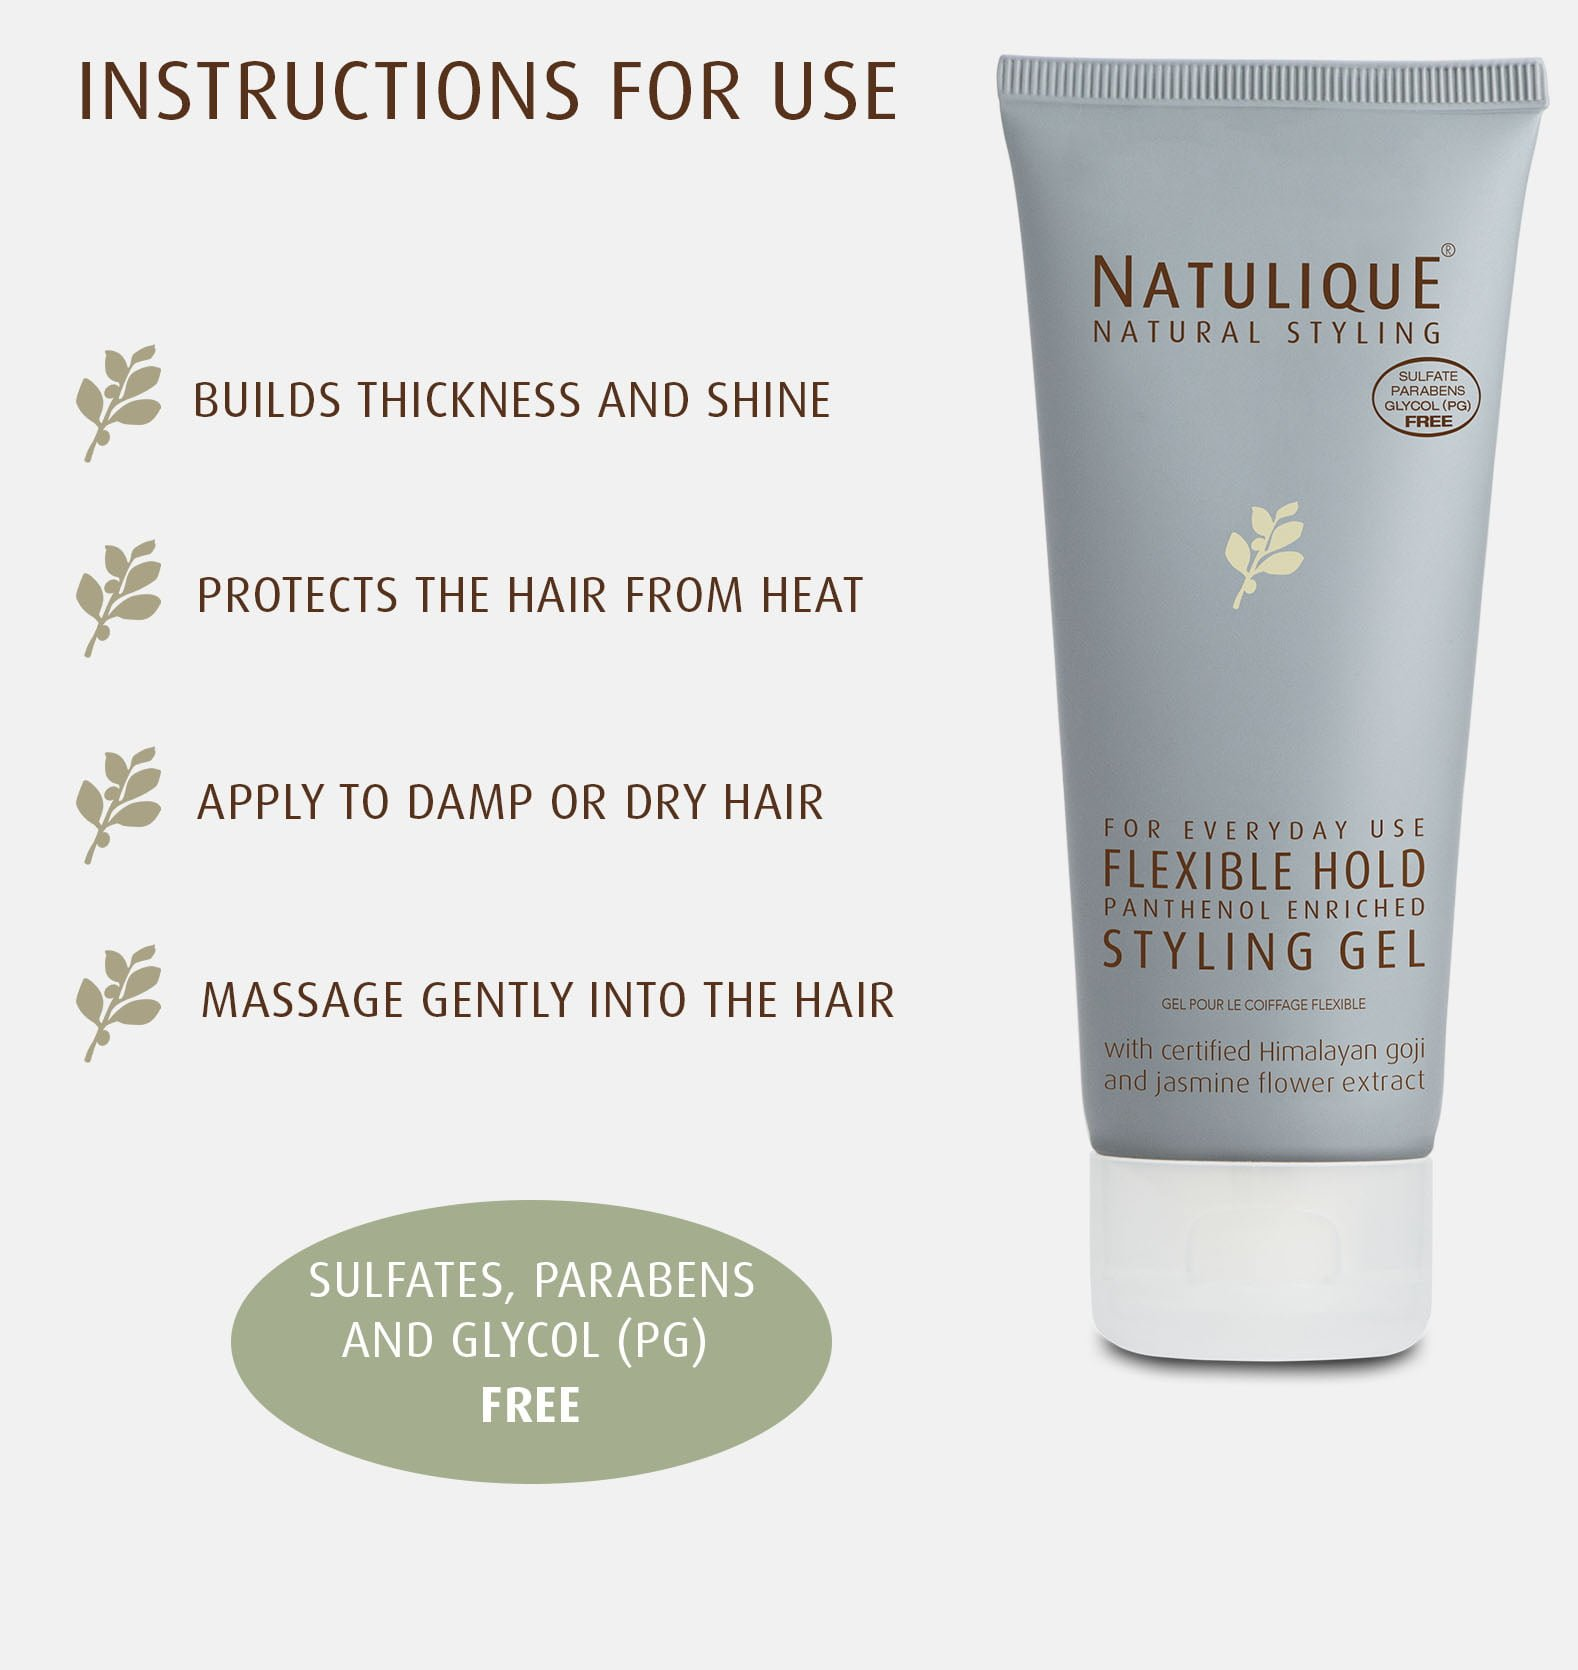 Natulique Styling Gel